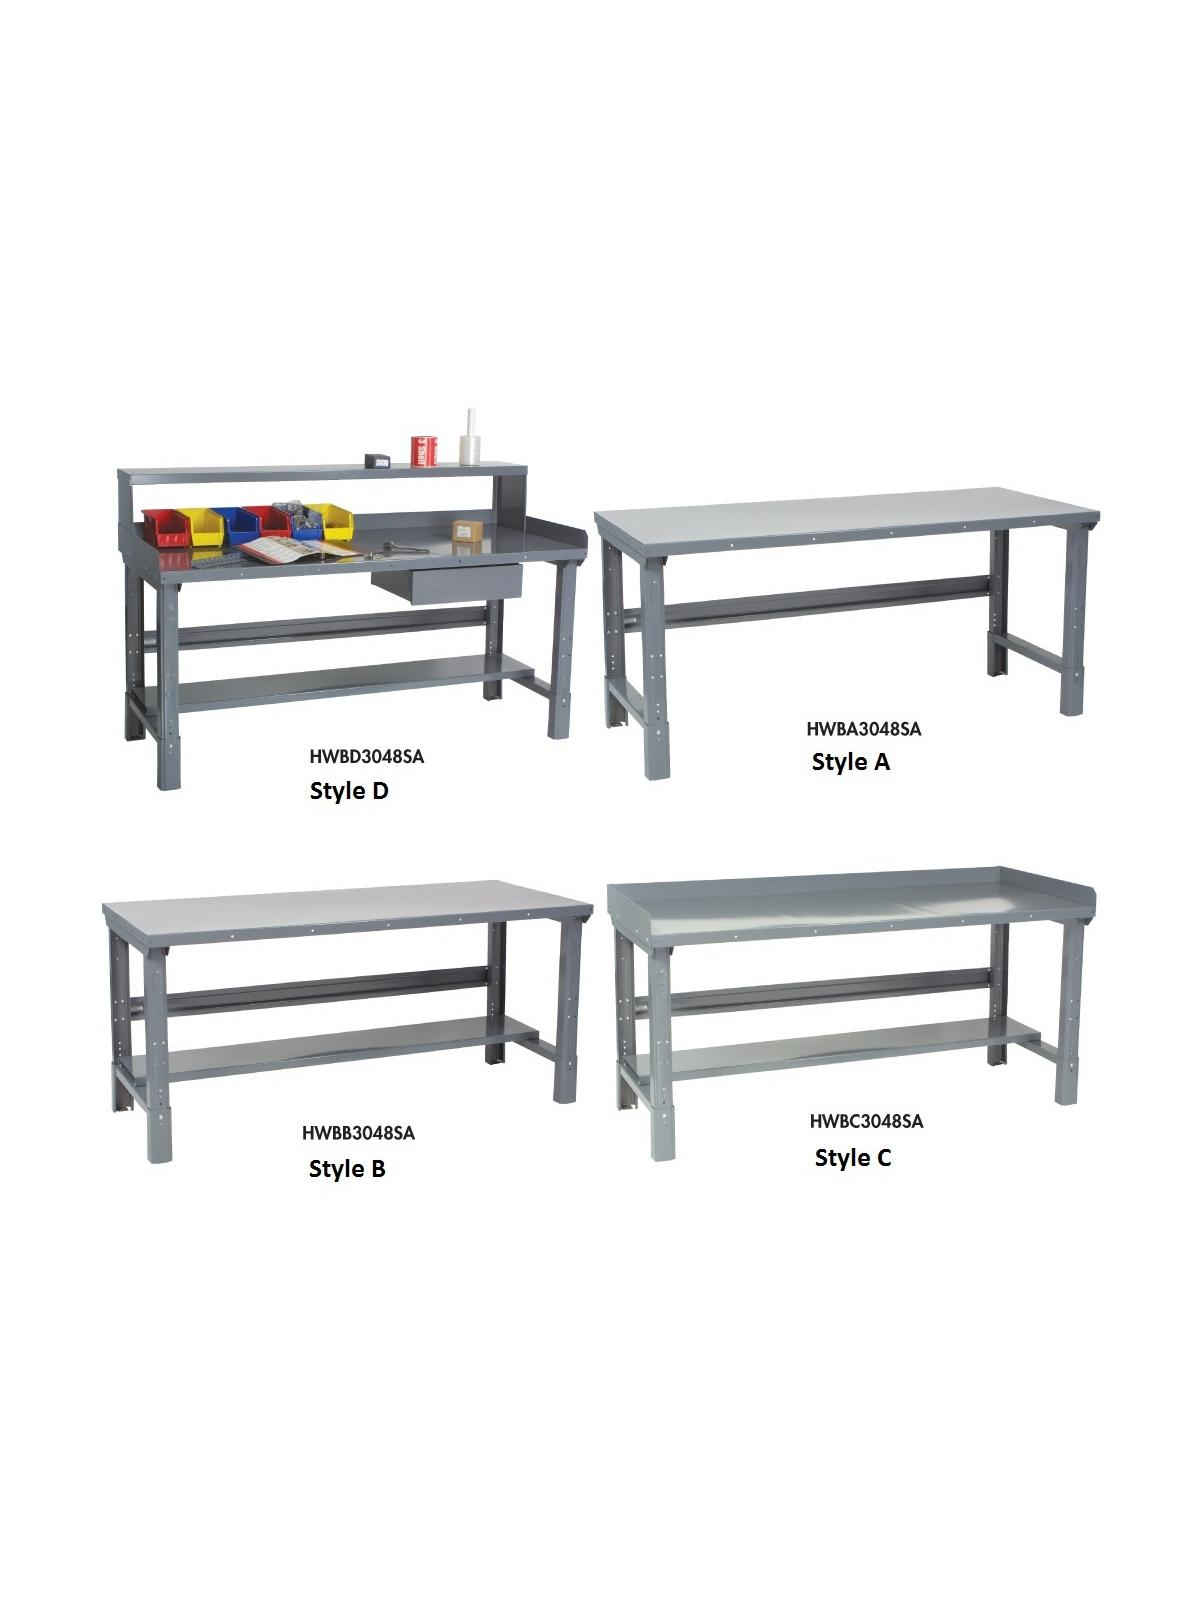 Metal Work Benches At Nationwide Industrial Supply Llc